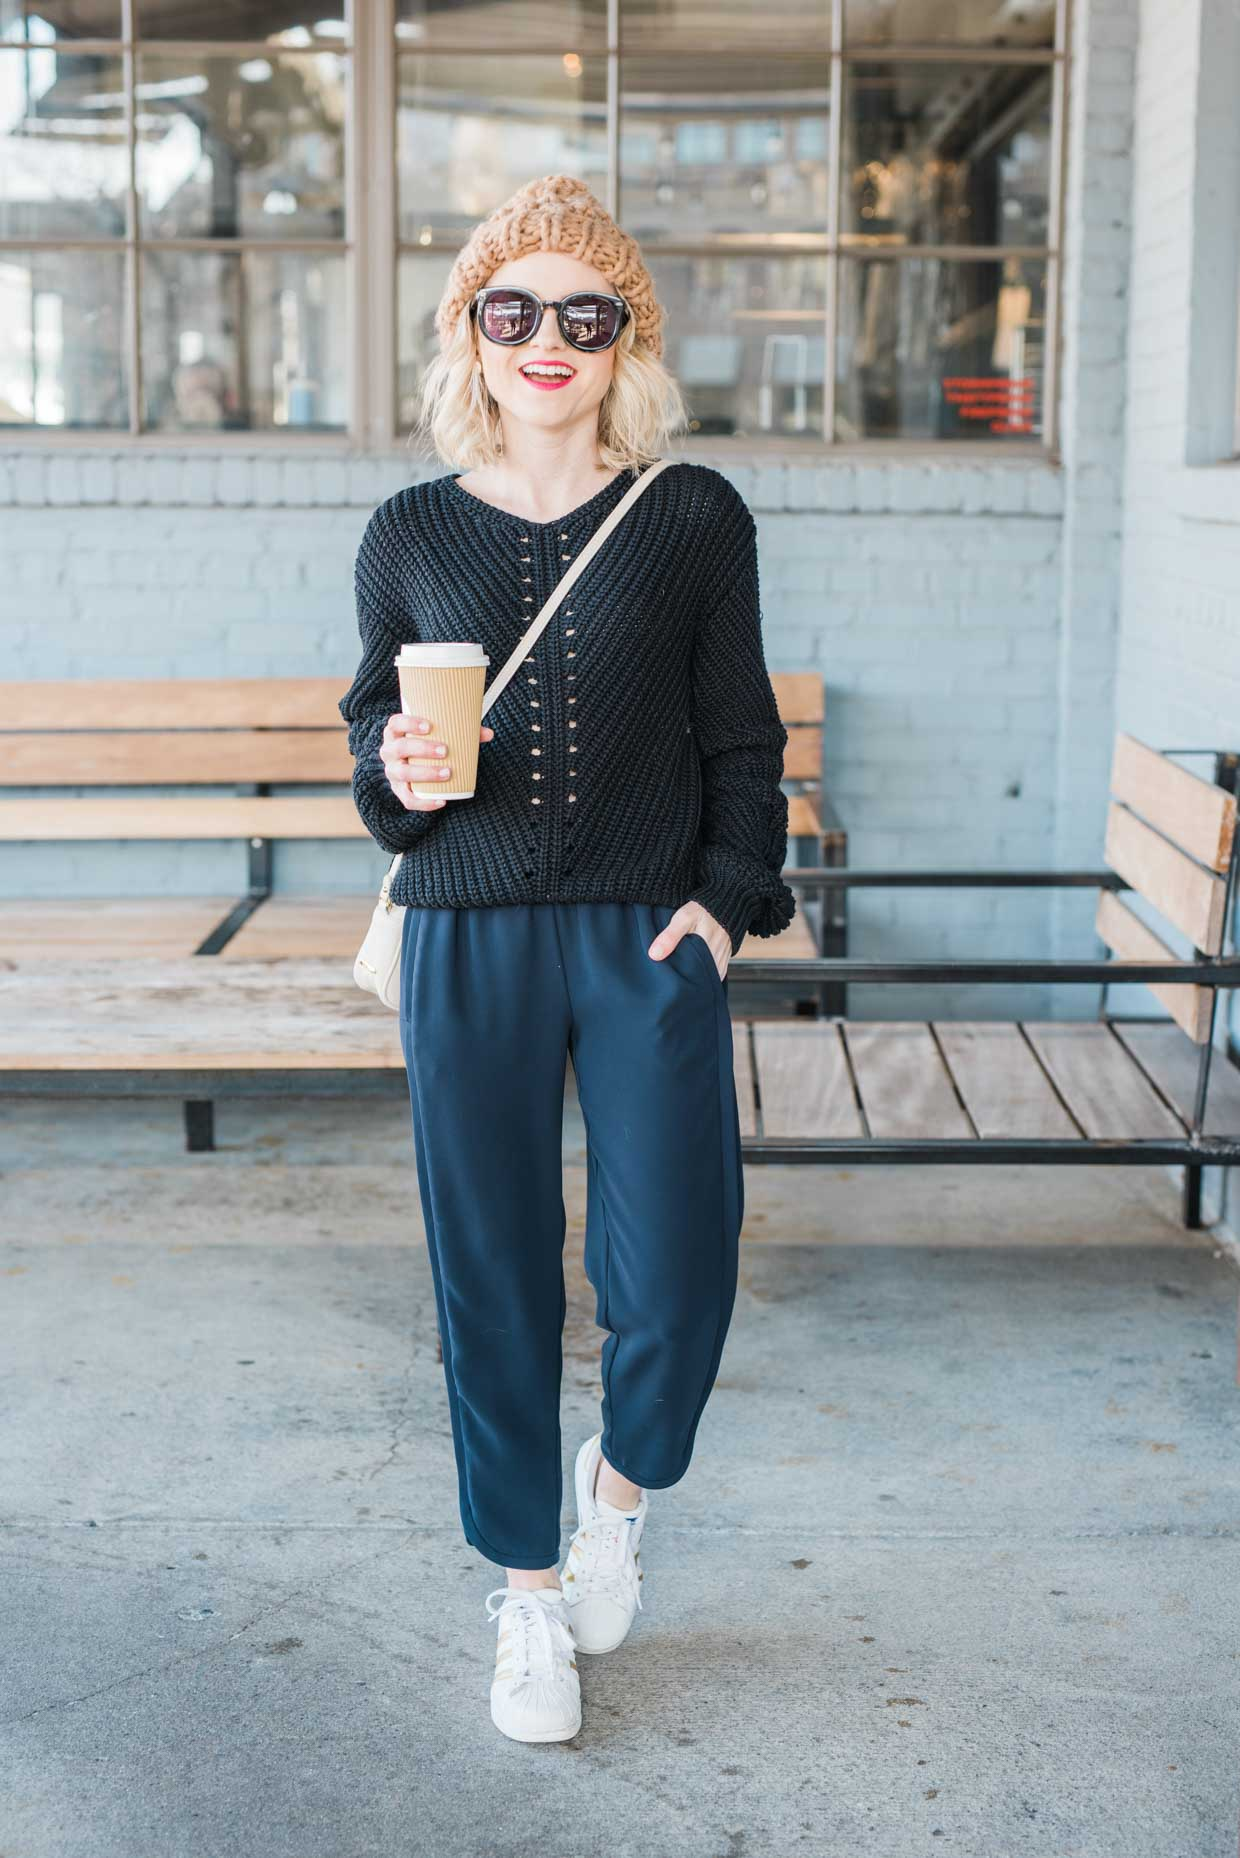 Wear Ankle Pants Outfits